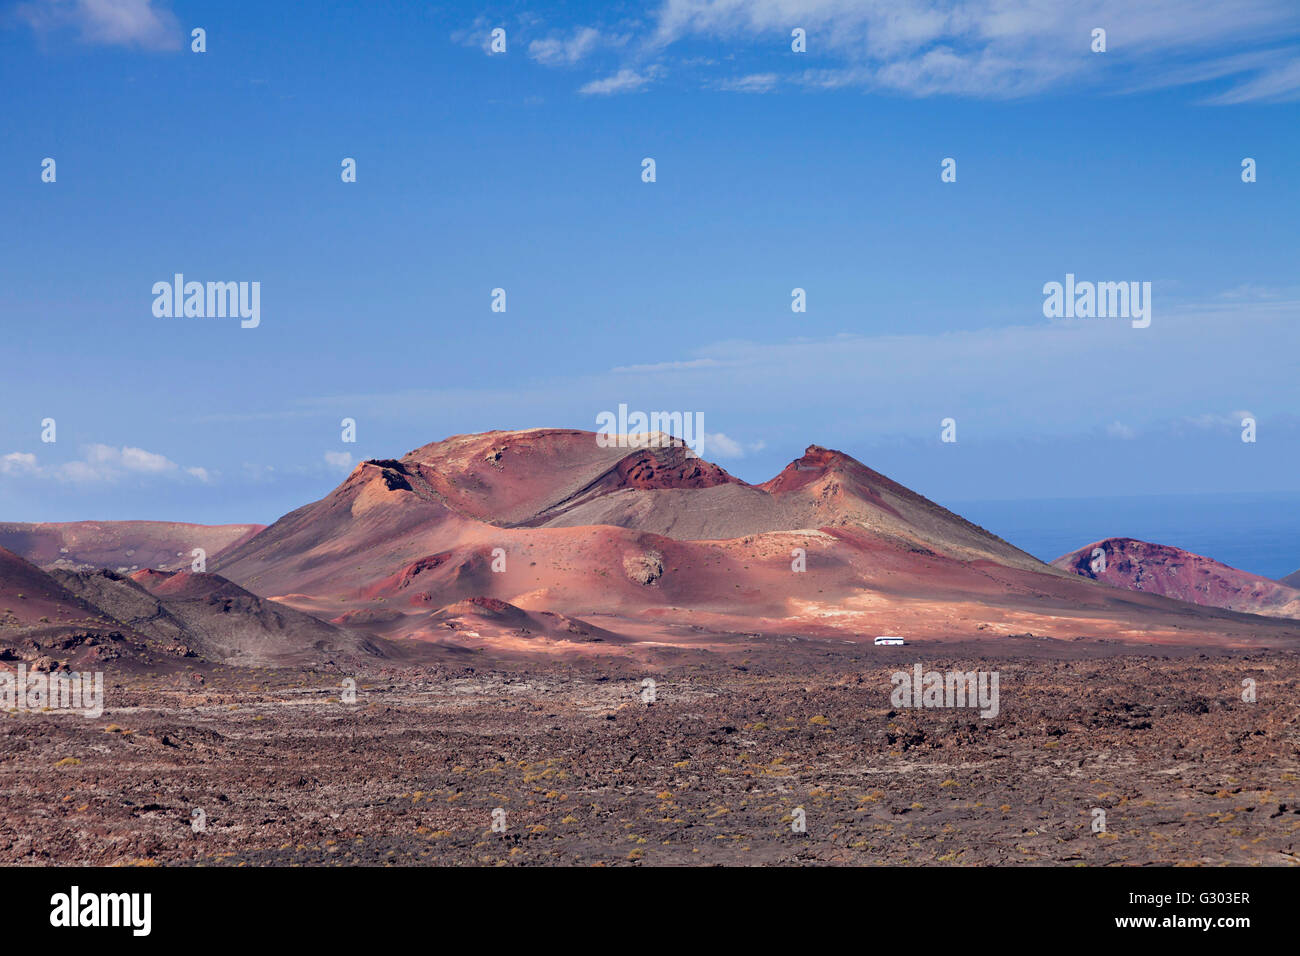 Fire Mountains Montanas Del Fuego Timanfaya National Park Stock Photo Alamy